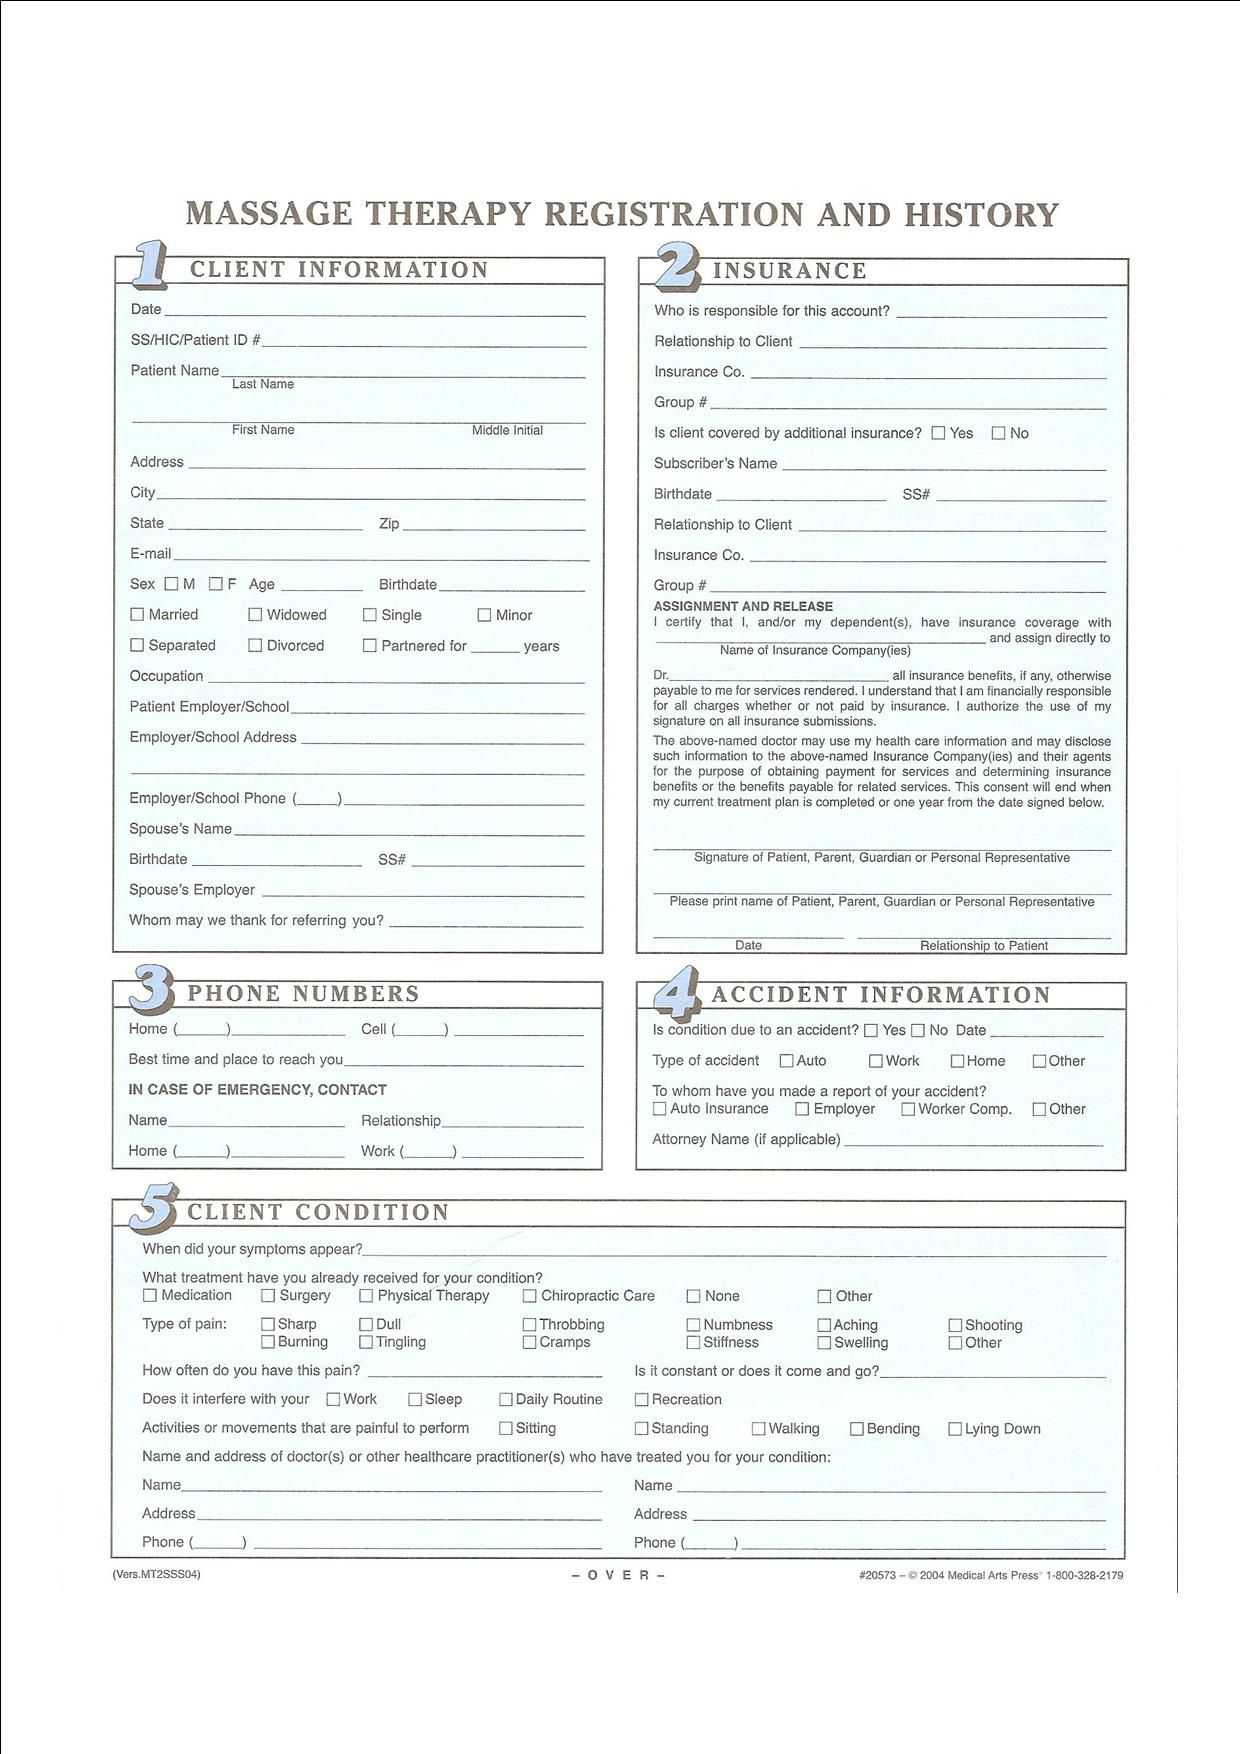 Intake Form Template. salon client intake form templates image ...